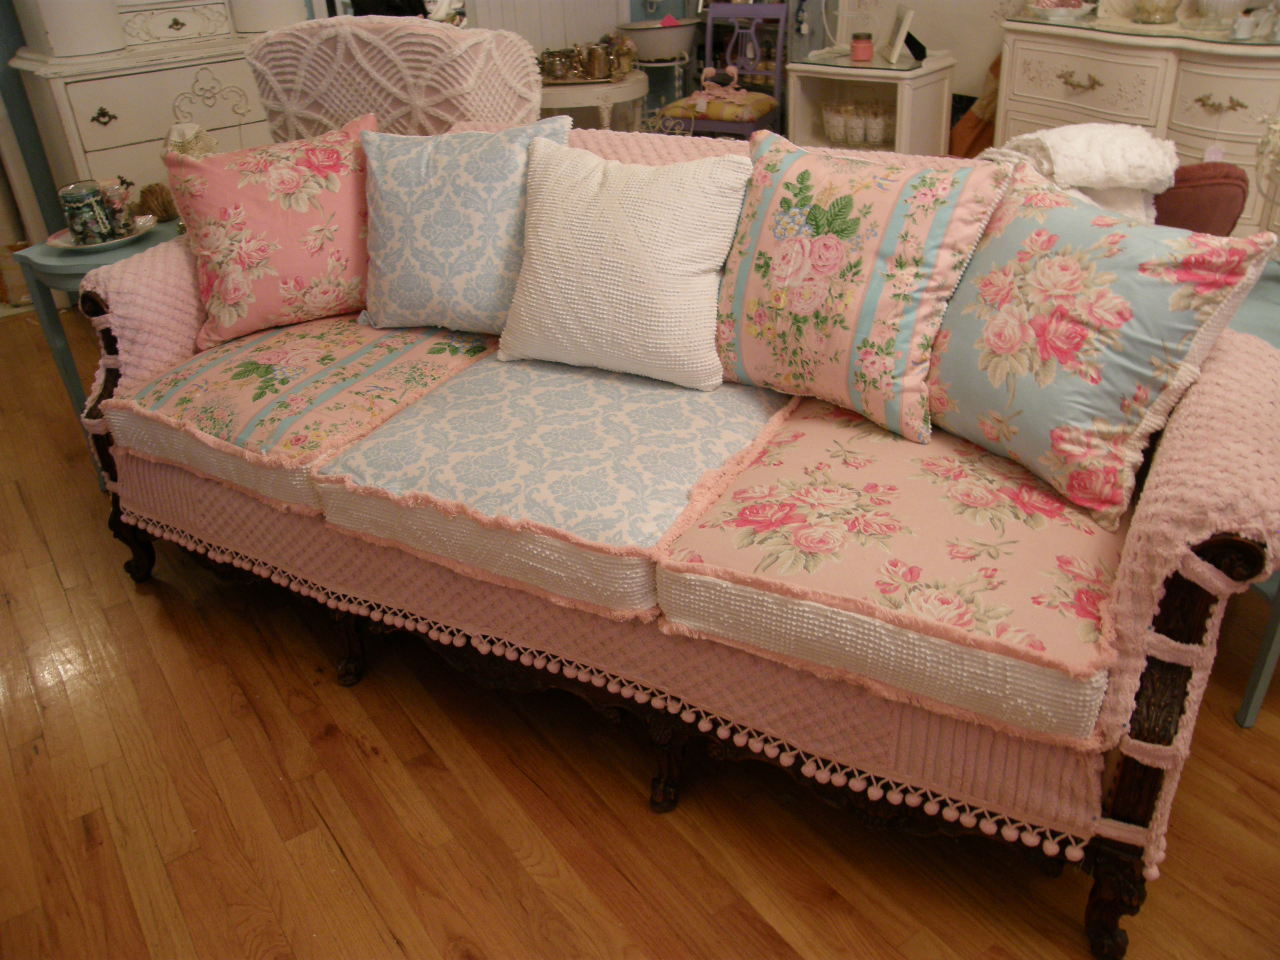 vintage chic furniture schenectady ny my vintage chenille slipcovered pieces. Black Bedroom Furniture Sets. Home Design Ideas